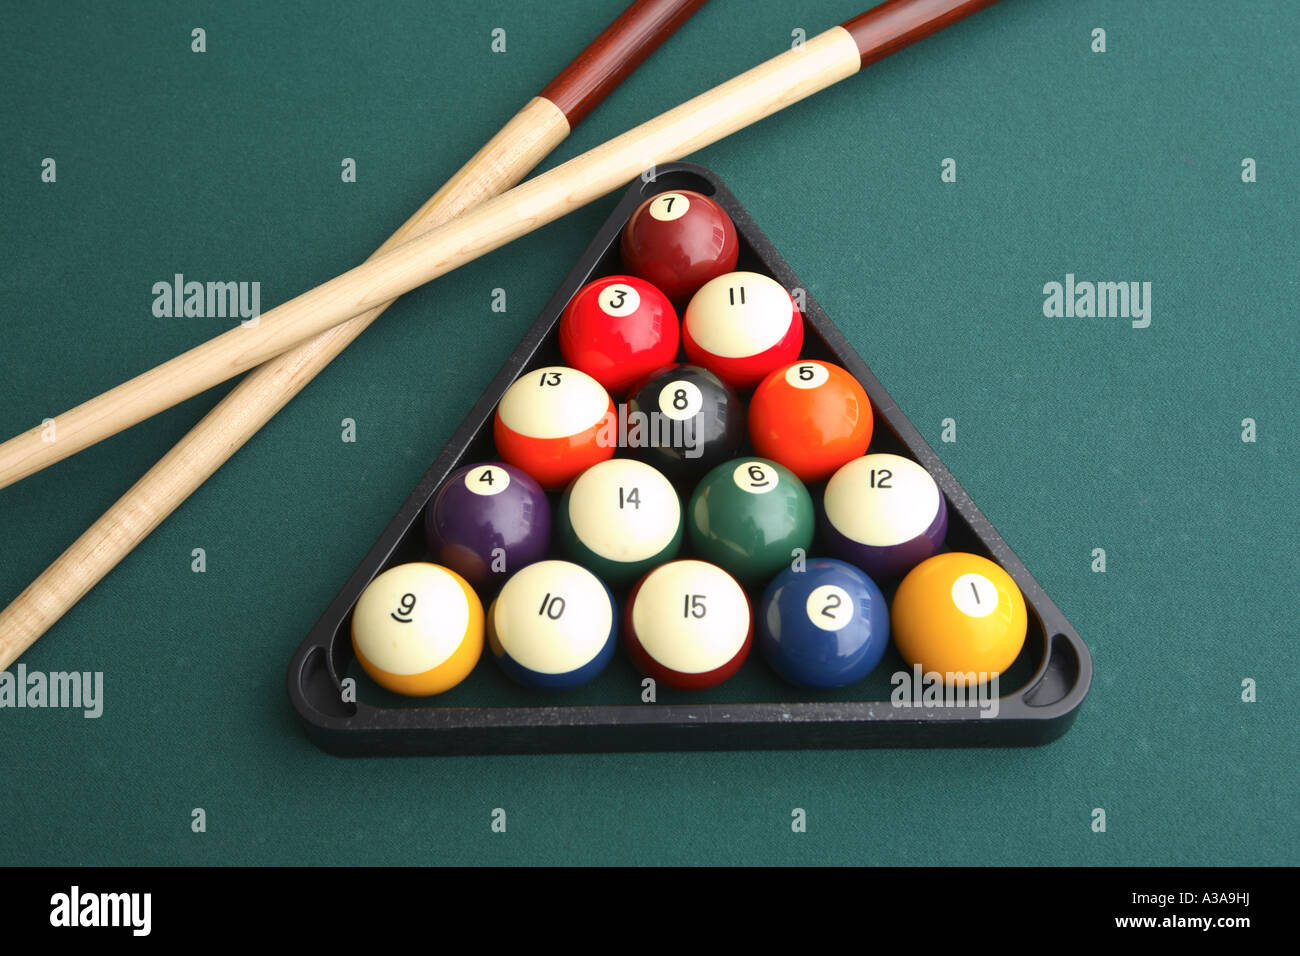 hd wallpapers table pinterest sport pool photo pin wallpaper balls billiard